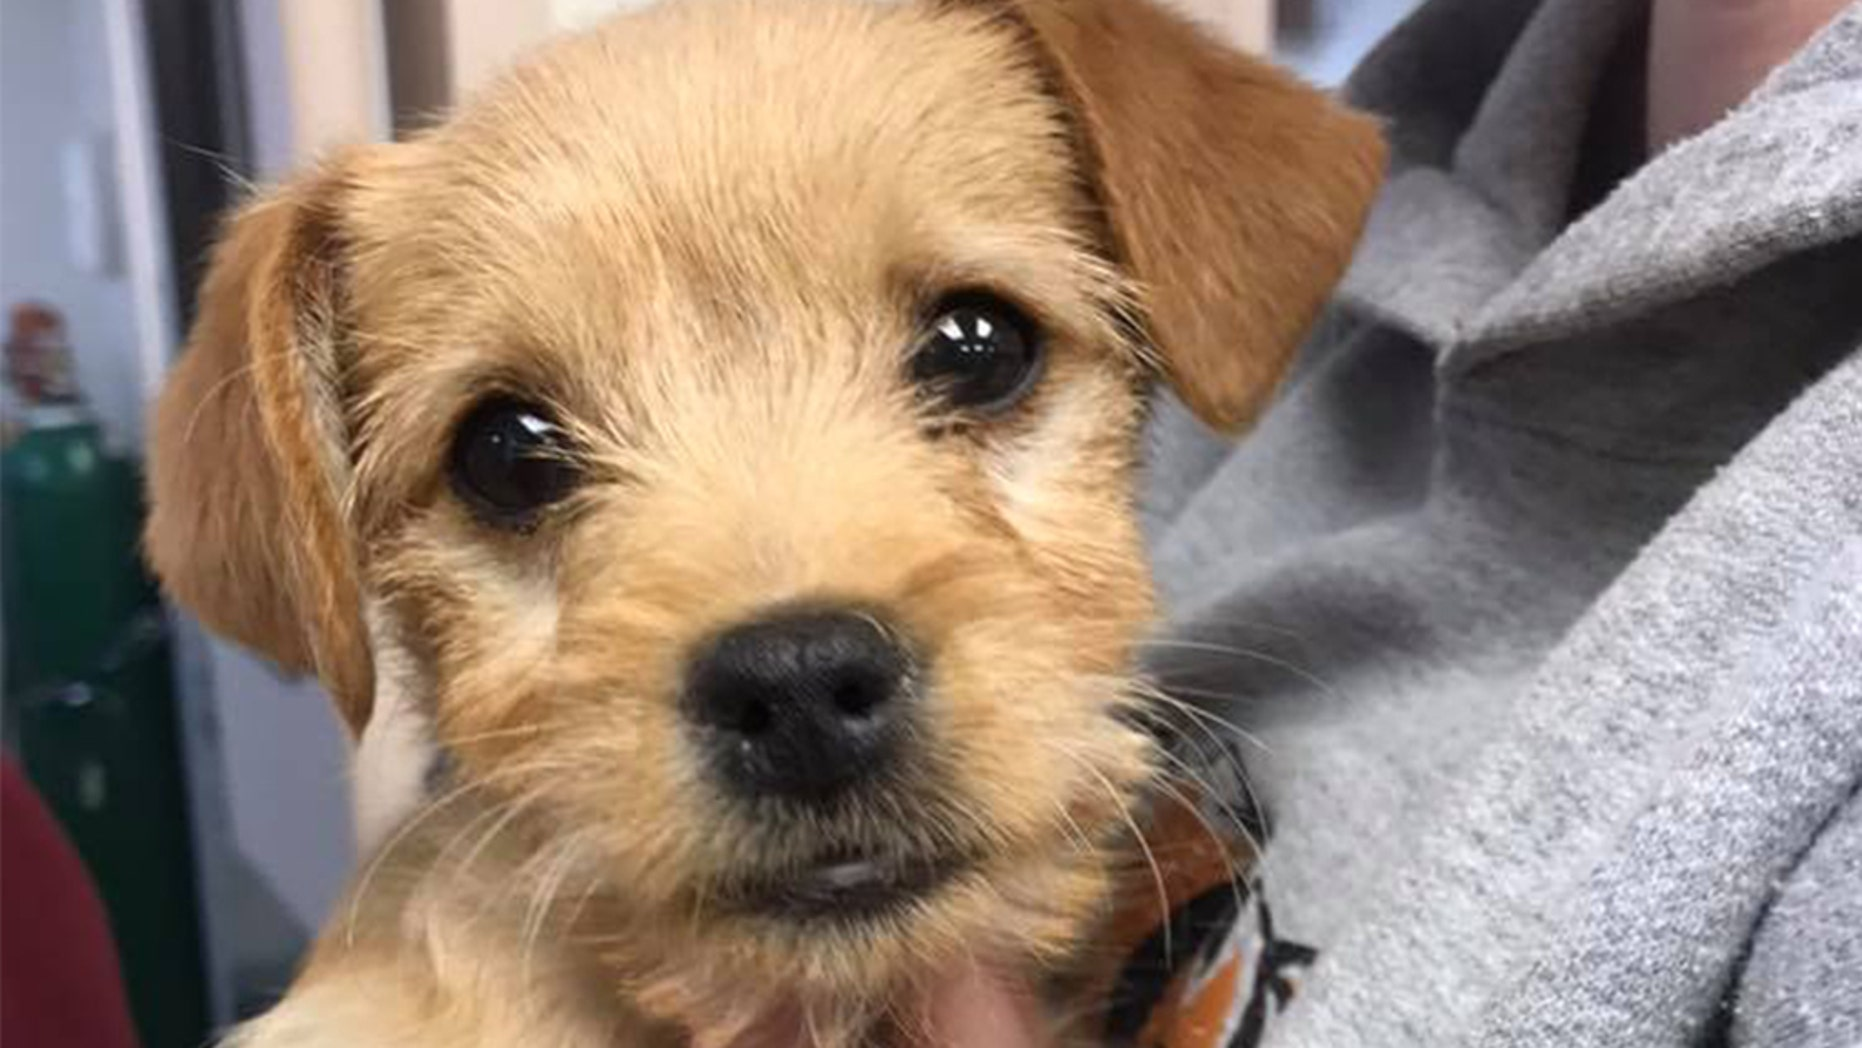 This 6-pound puppy died after he ingested almost 50 short ribs, a California animal shelter said.